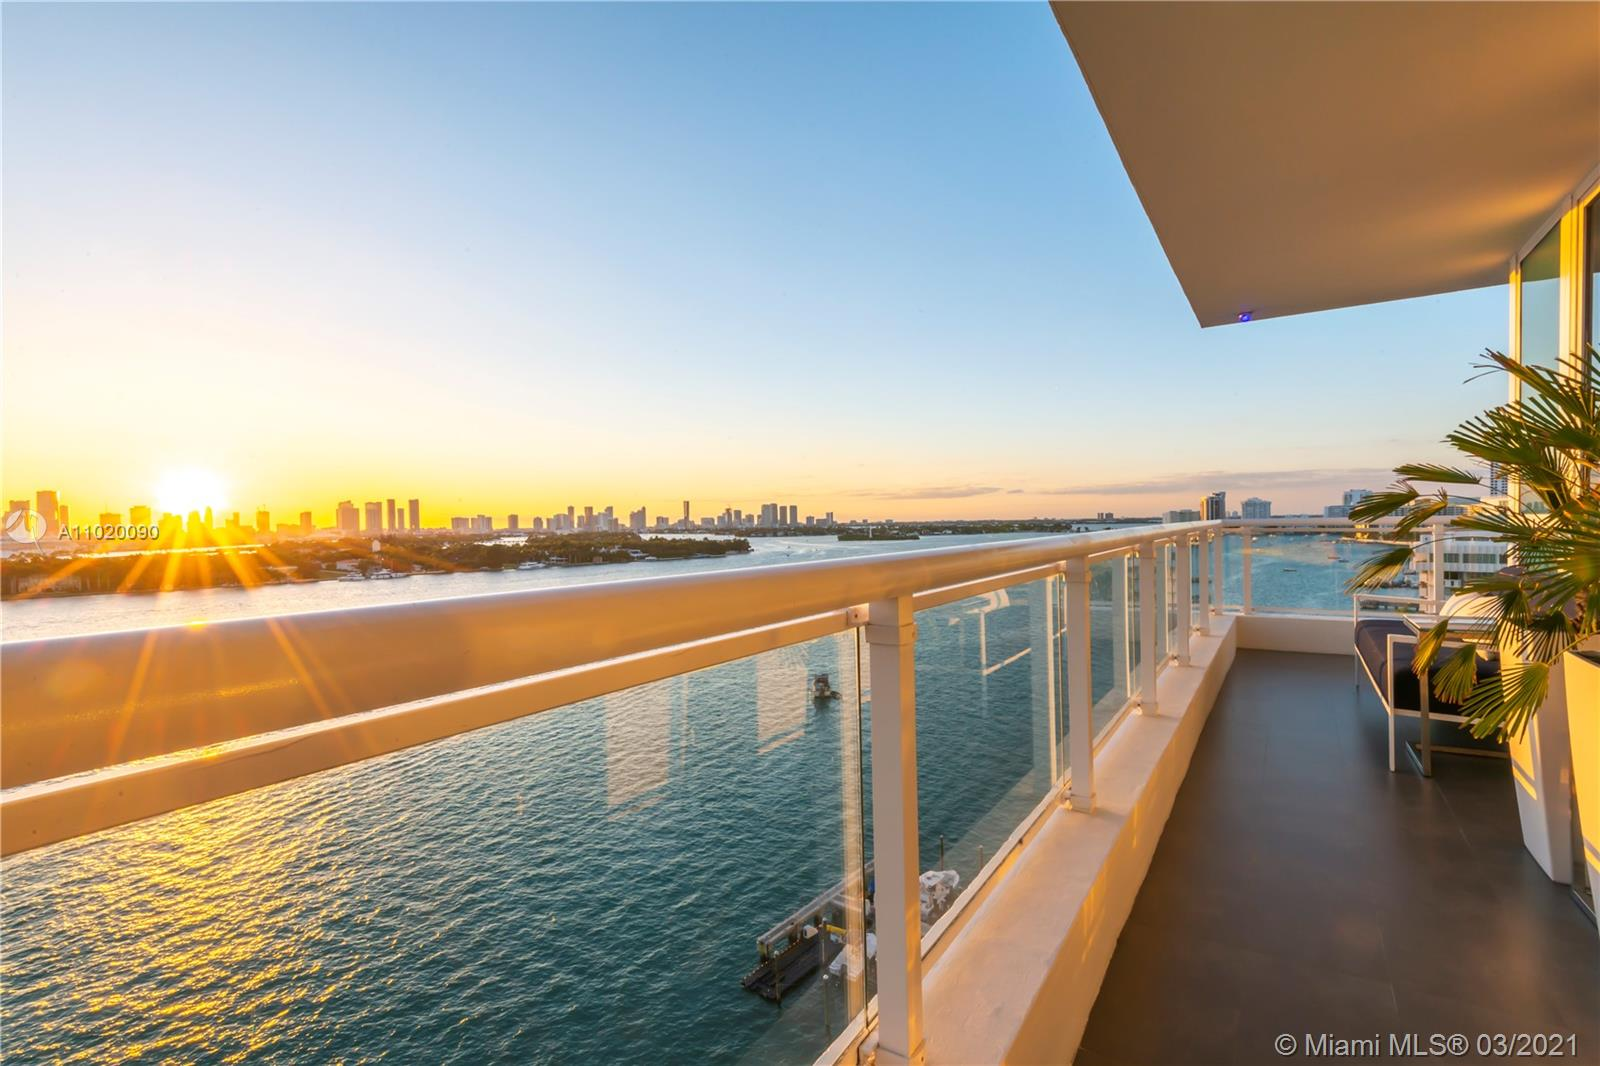 Surround yourself in luxury at the beautiful Bentley Bay on Miami Beach. One of the best lines in the building, this gorgeous corner unit has expansive breathtaking views of the Ocean, Biscayne Bay, and Miami's Skyline. Recently updated to perfection it is turnkey and ready to move in. Two bedrooms with custom closets and ensuite baths designed with Porcelanosa bathroom finishes make it elegant and timeless. The ability to change one of the bedrooms into a flex second living area is brilliant for entertaining. Eggersman designed kitchen boasts Miele appliances and Neolith wall panels and countertops make for a seamless transition from living room to kitchen. Complete this picture with a large fitness center, spa, pool, hot tubs, and lush landscaped pool deck, 24 hour security and valet.